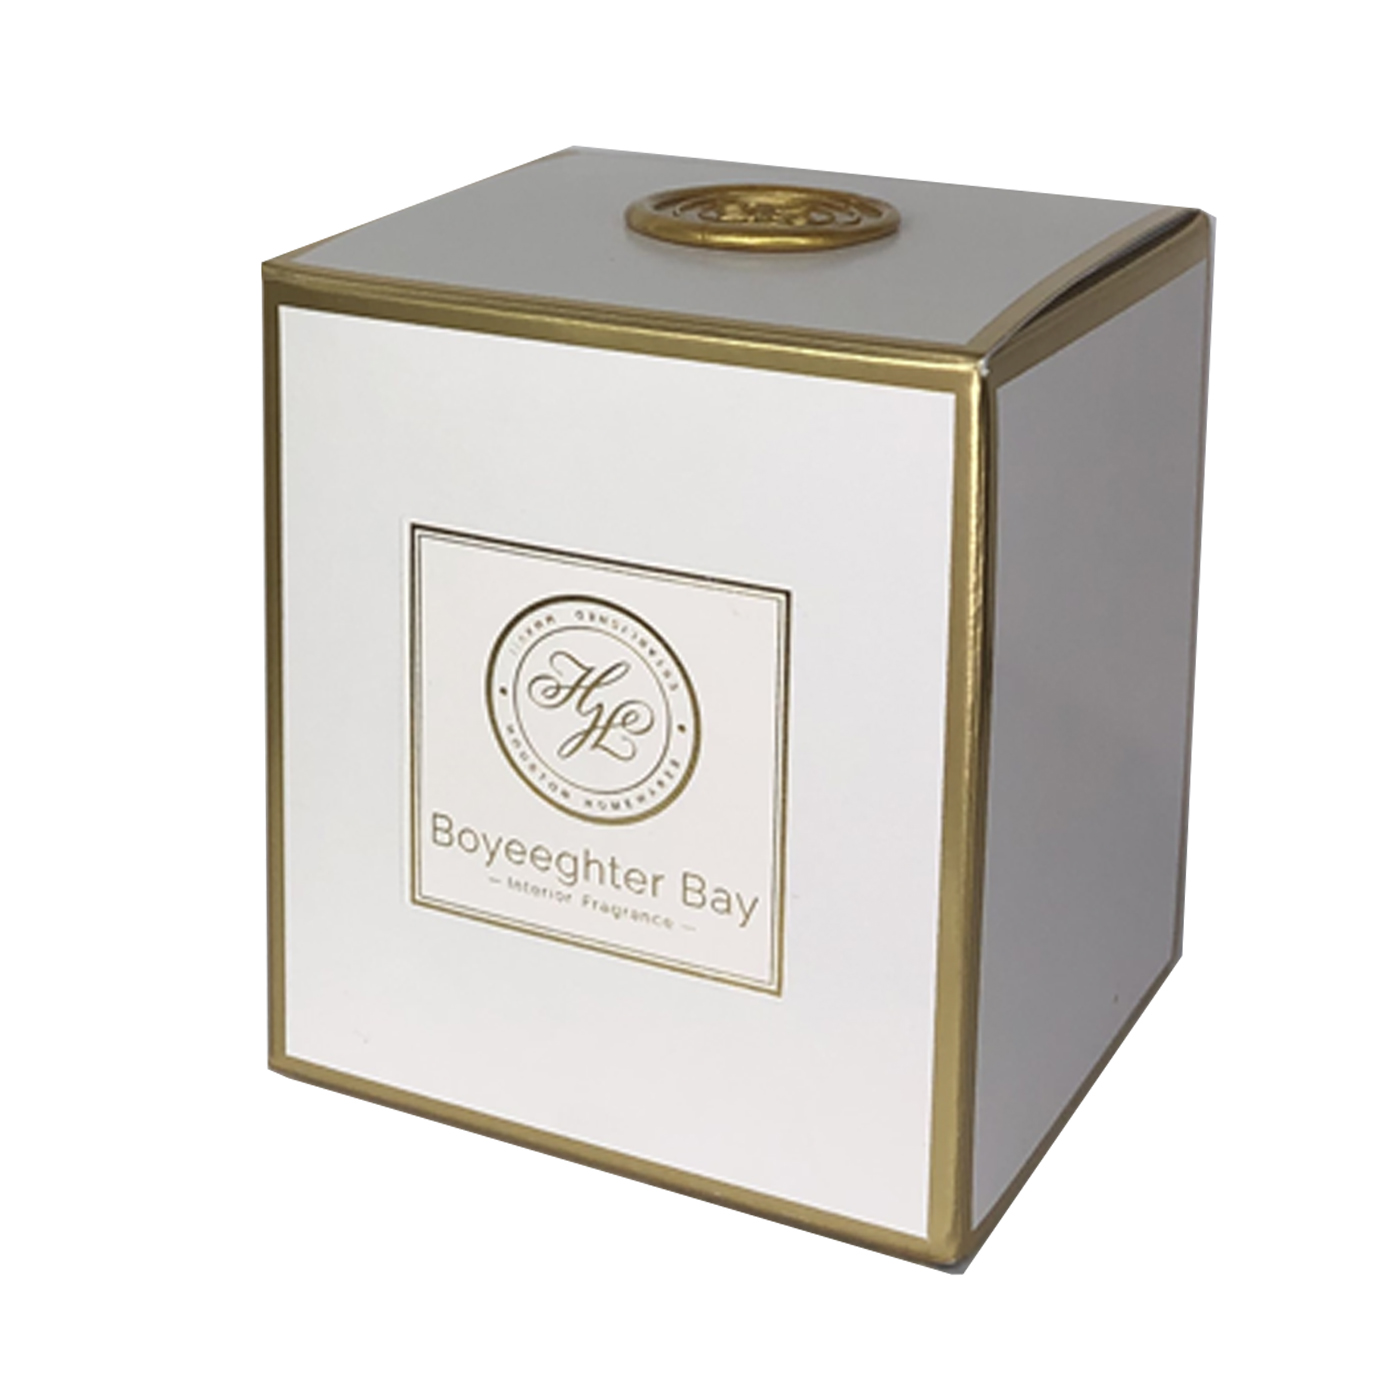 1111 Boyeeghter Bay luxury soy wax candle